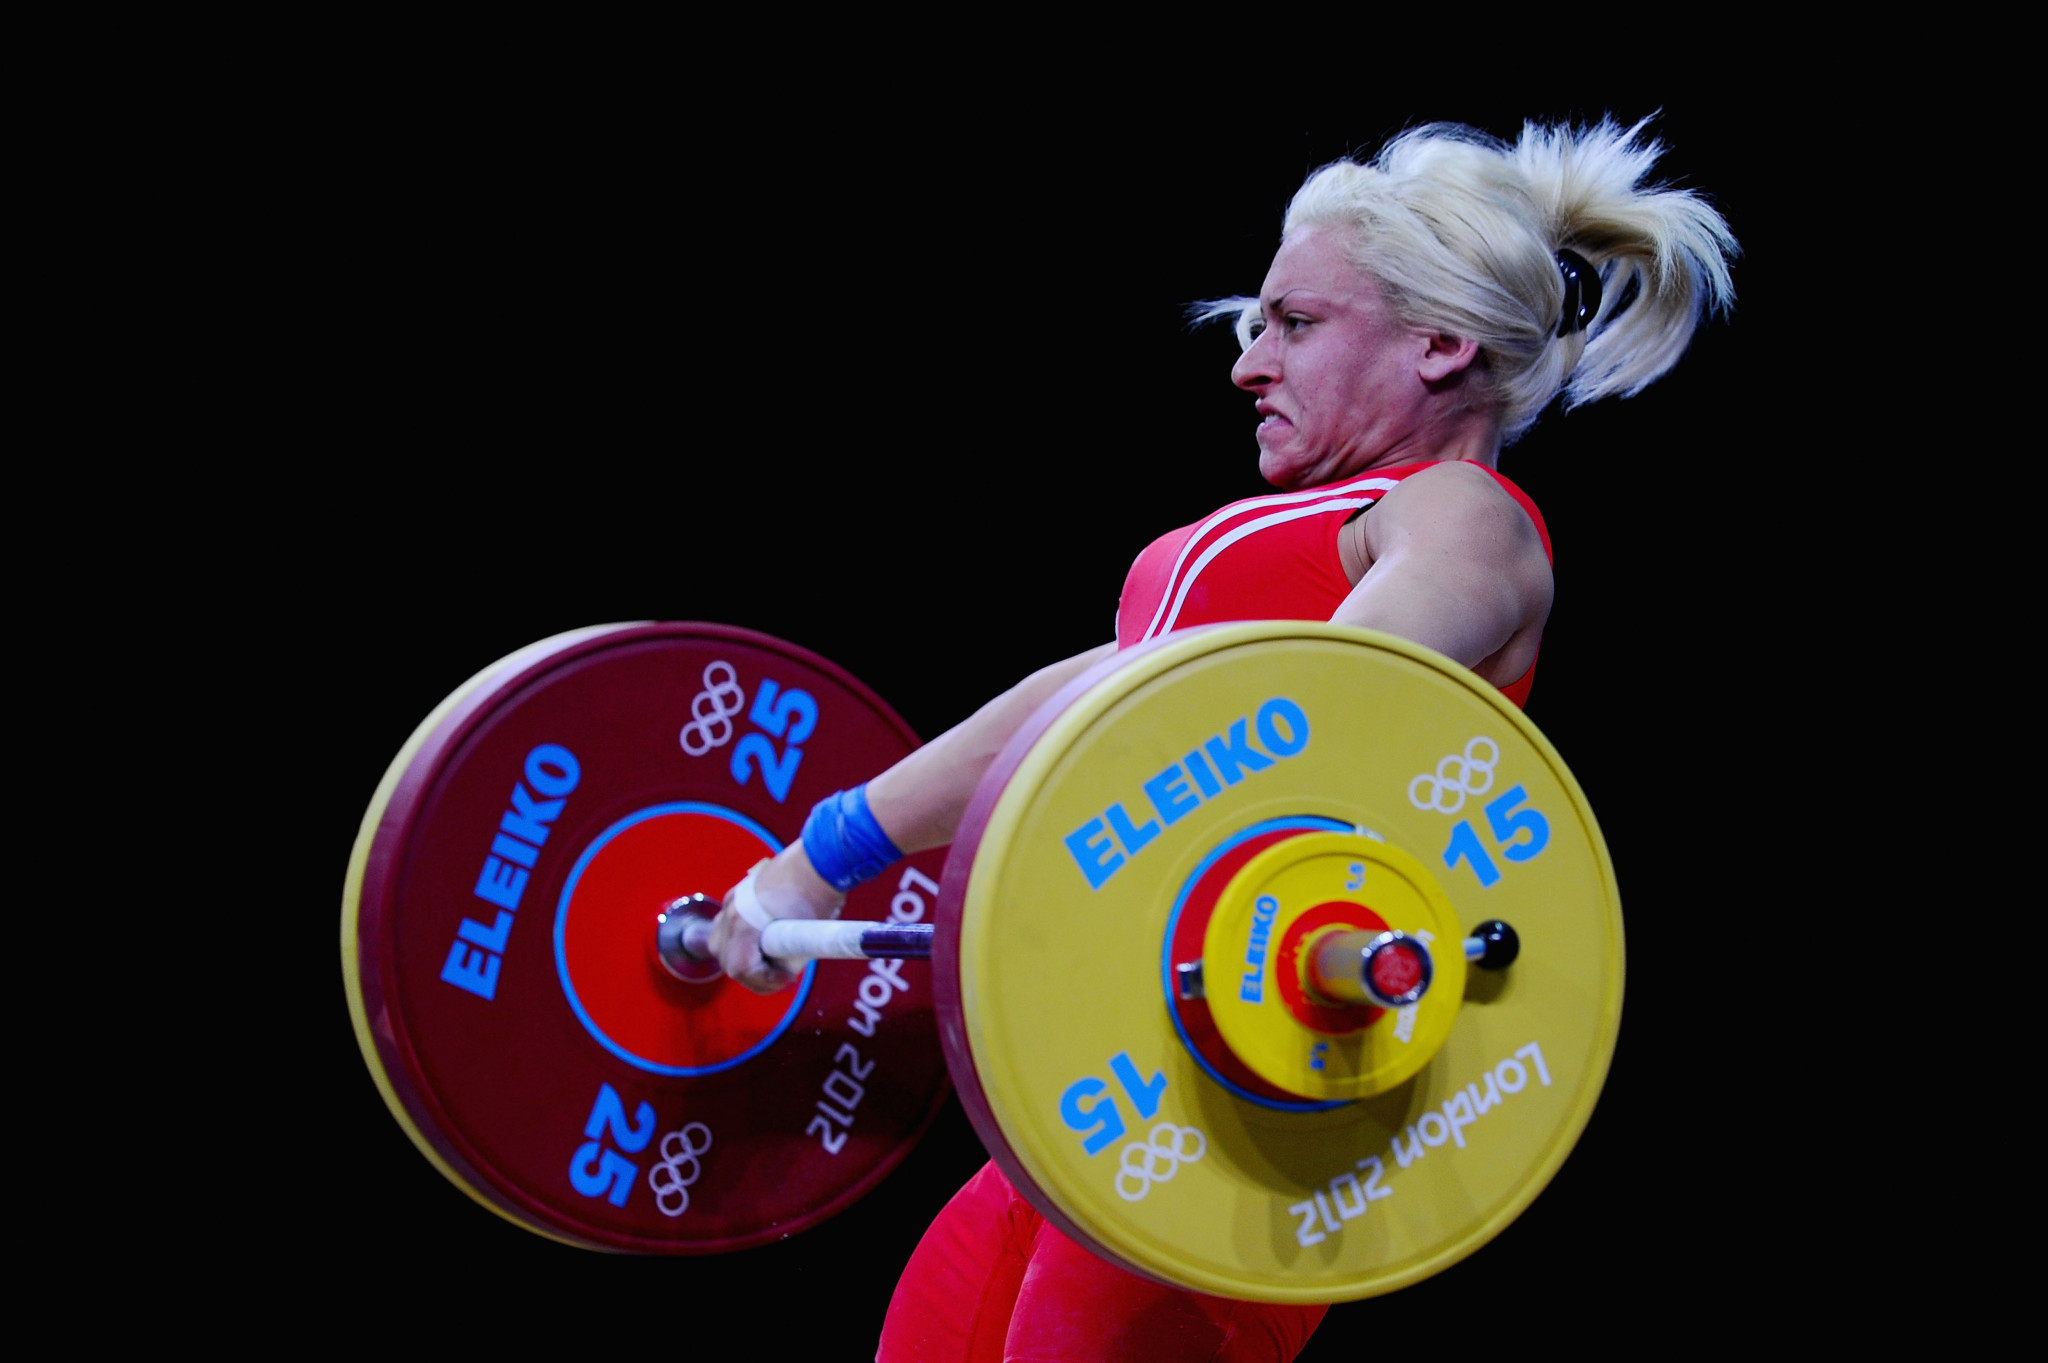 Weightlifter Kostova suspended for eight years - after life bans for doctor and coach